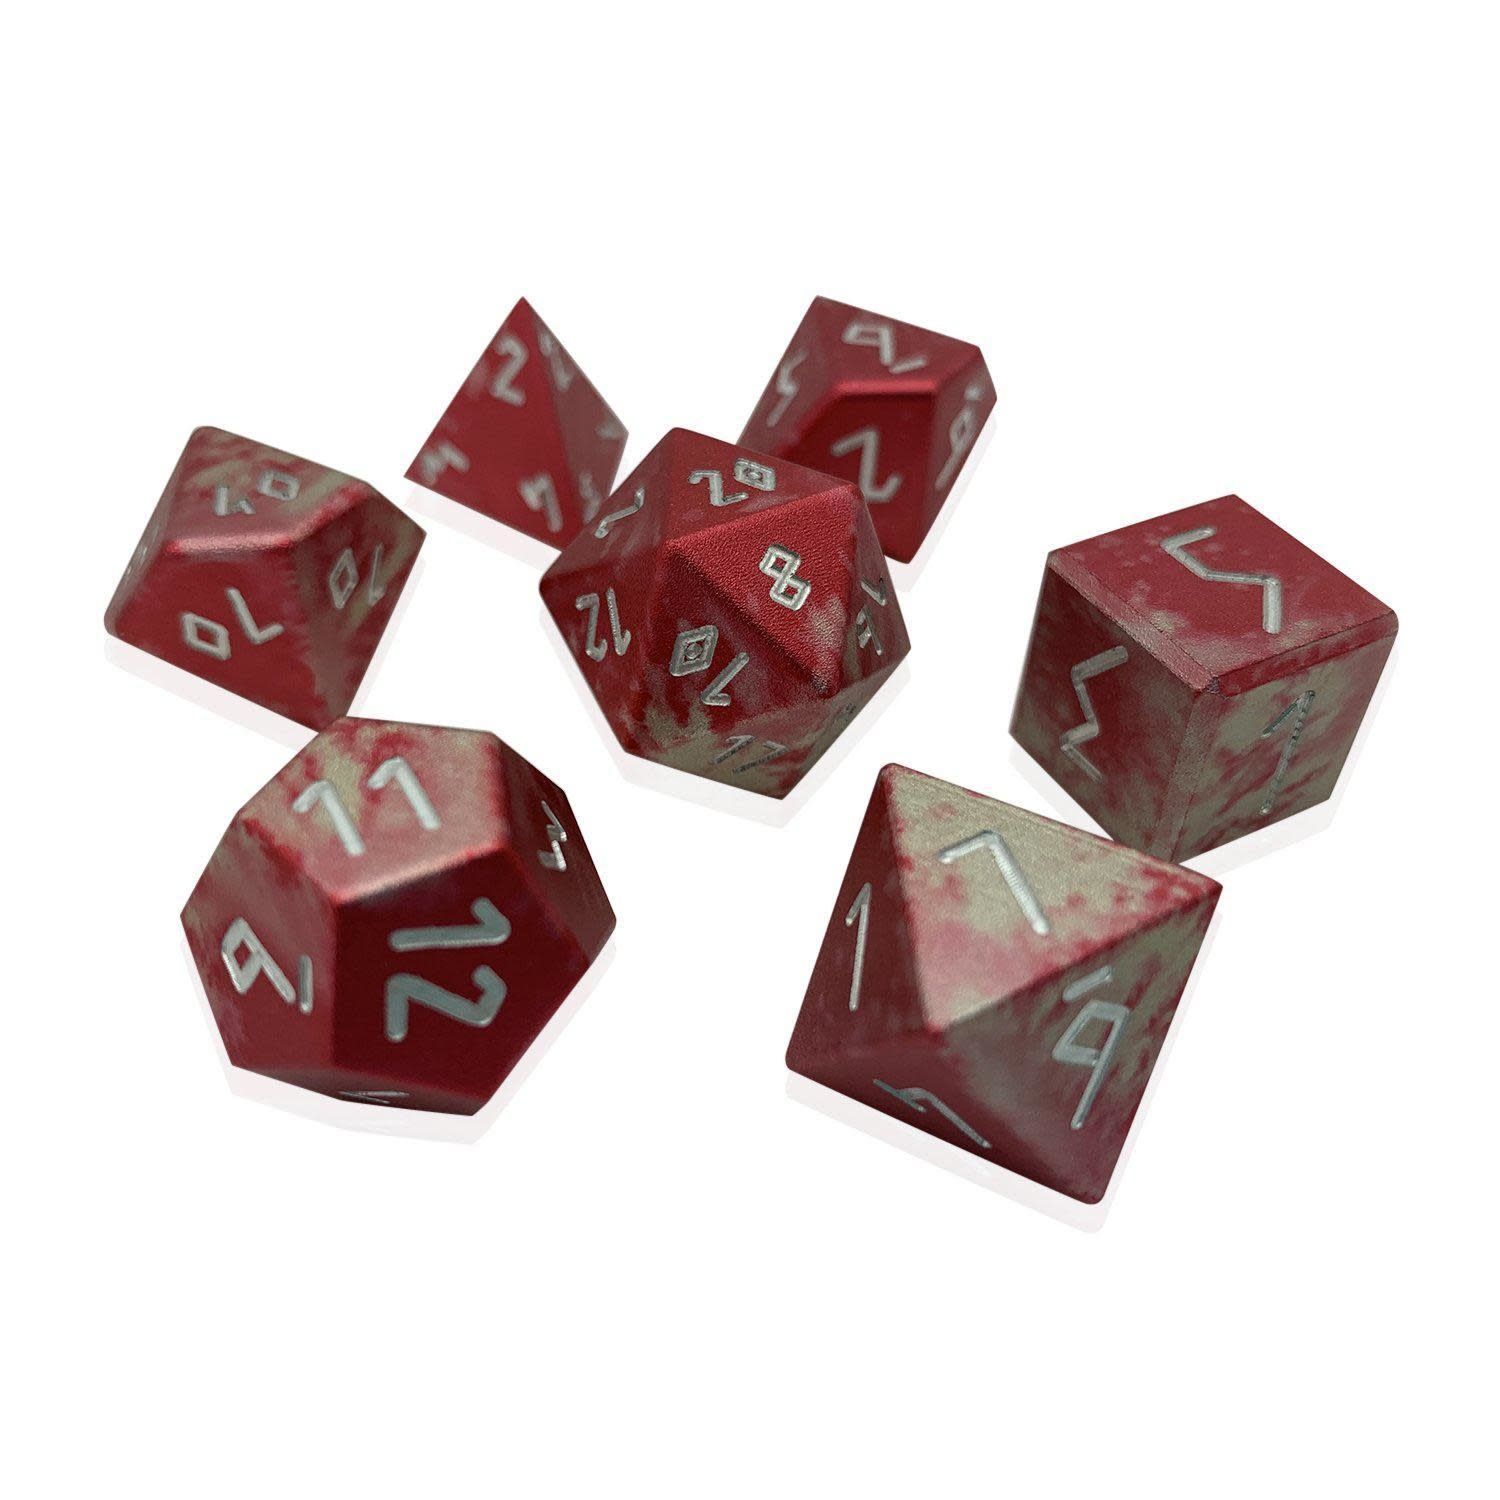 Sneak Attack Wondrous Dice Set Of 7 Rpg Dice Recess Games Llc Check out our aluminum dice selection for the very best in unique or custom, handmade pieces from our games & puzzles shops. shop recess games